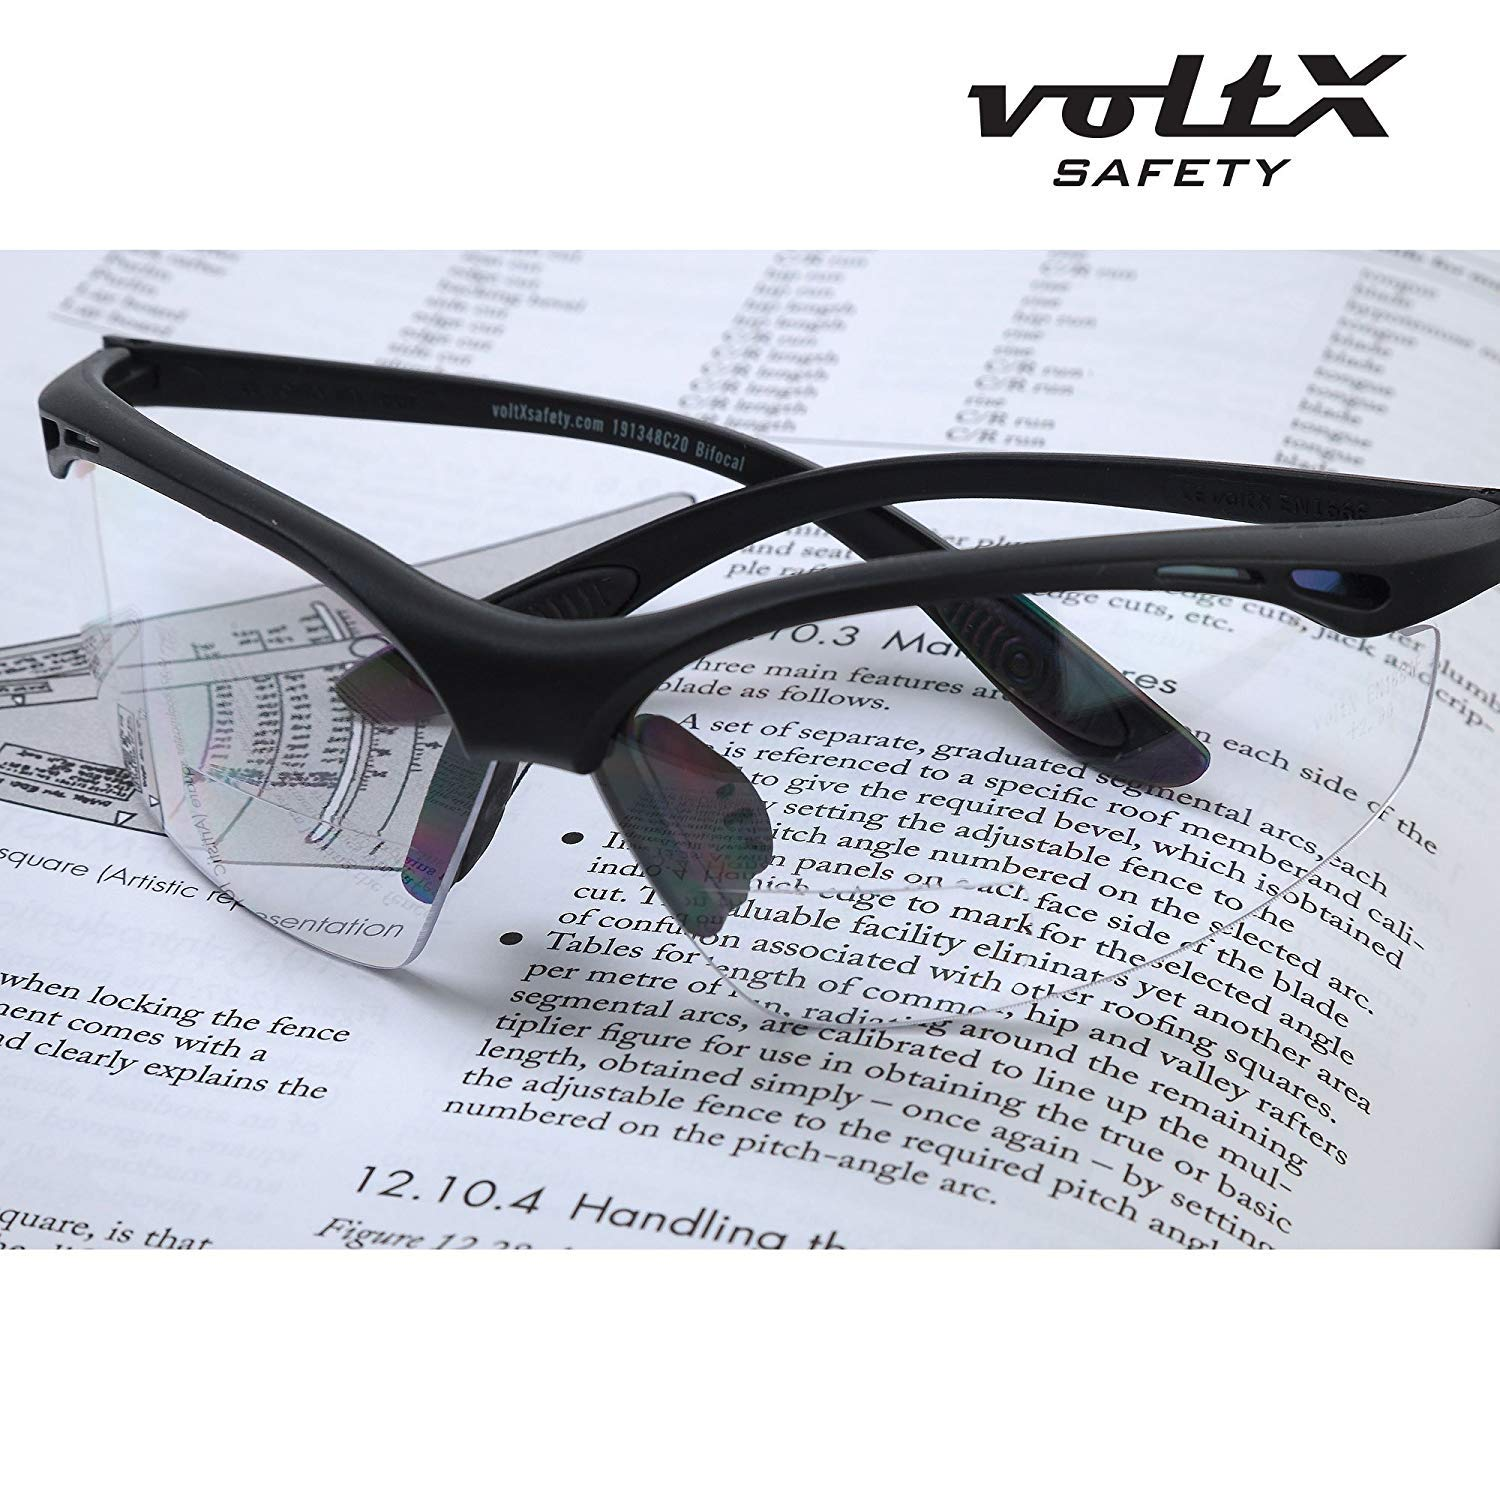 Rigid Clamshell Safety Case CLEAR +1.0 Dioptre CE EN166F certified//Cycling Sports Glasses includes safety cord voltX CONSTRUCTOR BIFOCAL Reading Safety Glasses